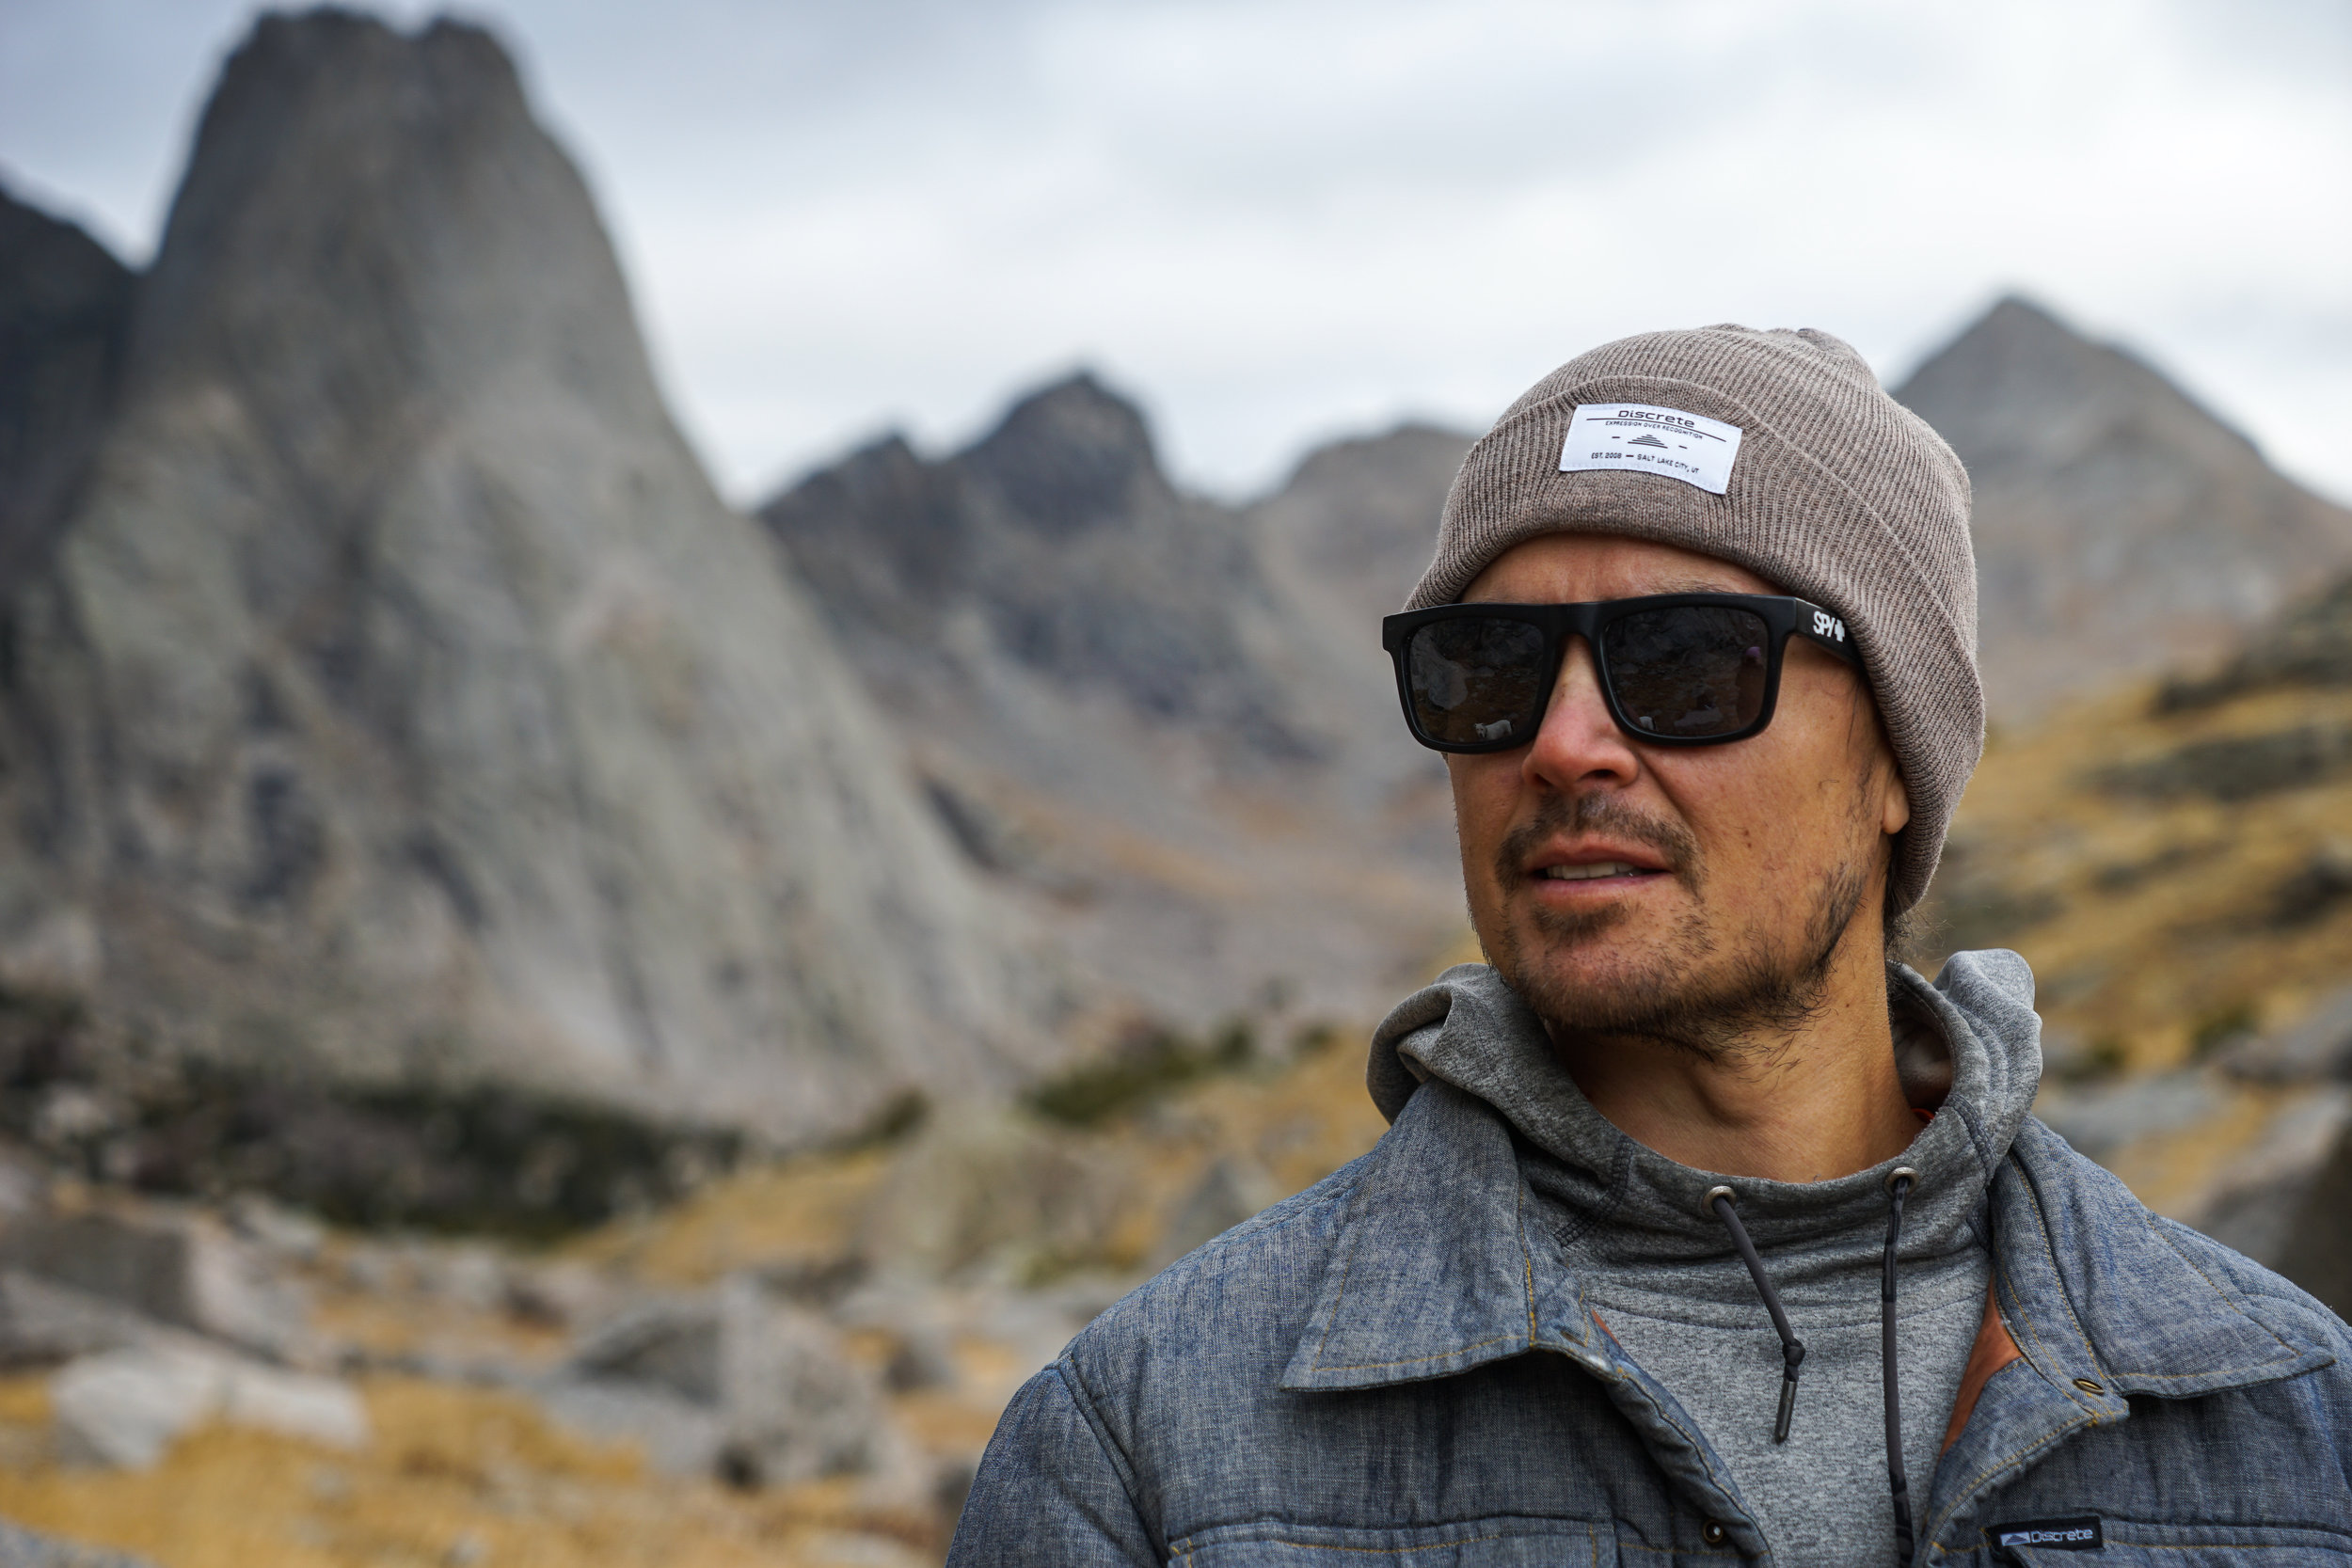 Julian Carr - Pro skier, Founder of Discrete Clothing and Cirque Series, activist, and world record holder.